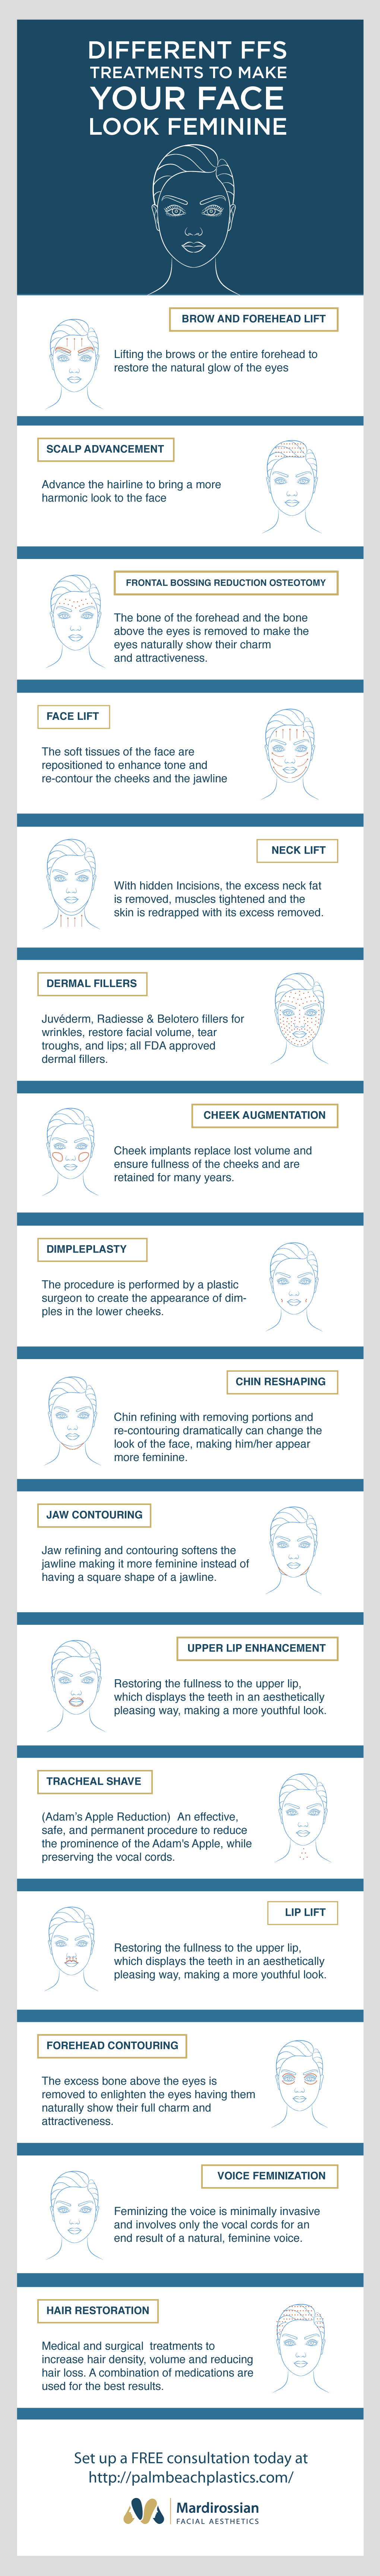 Different FFS Treatments to make your Face Look Feminine